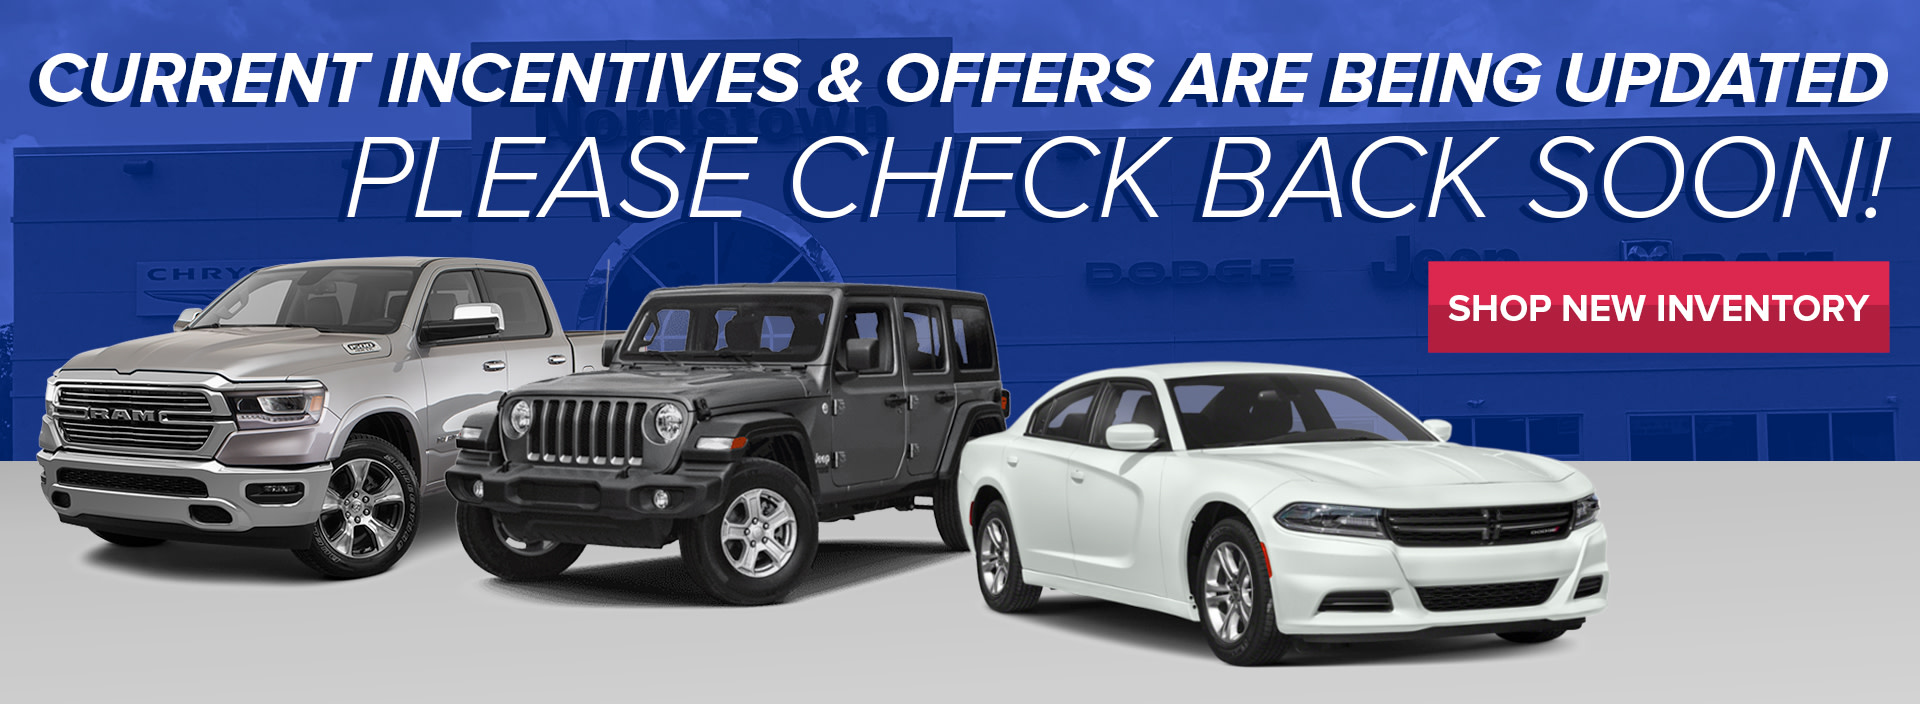 New Monthly Specials are being Added!